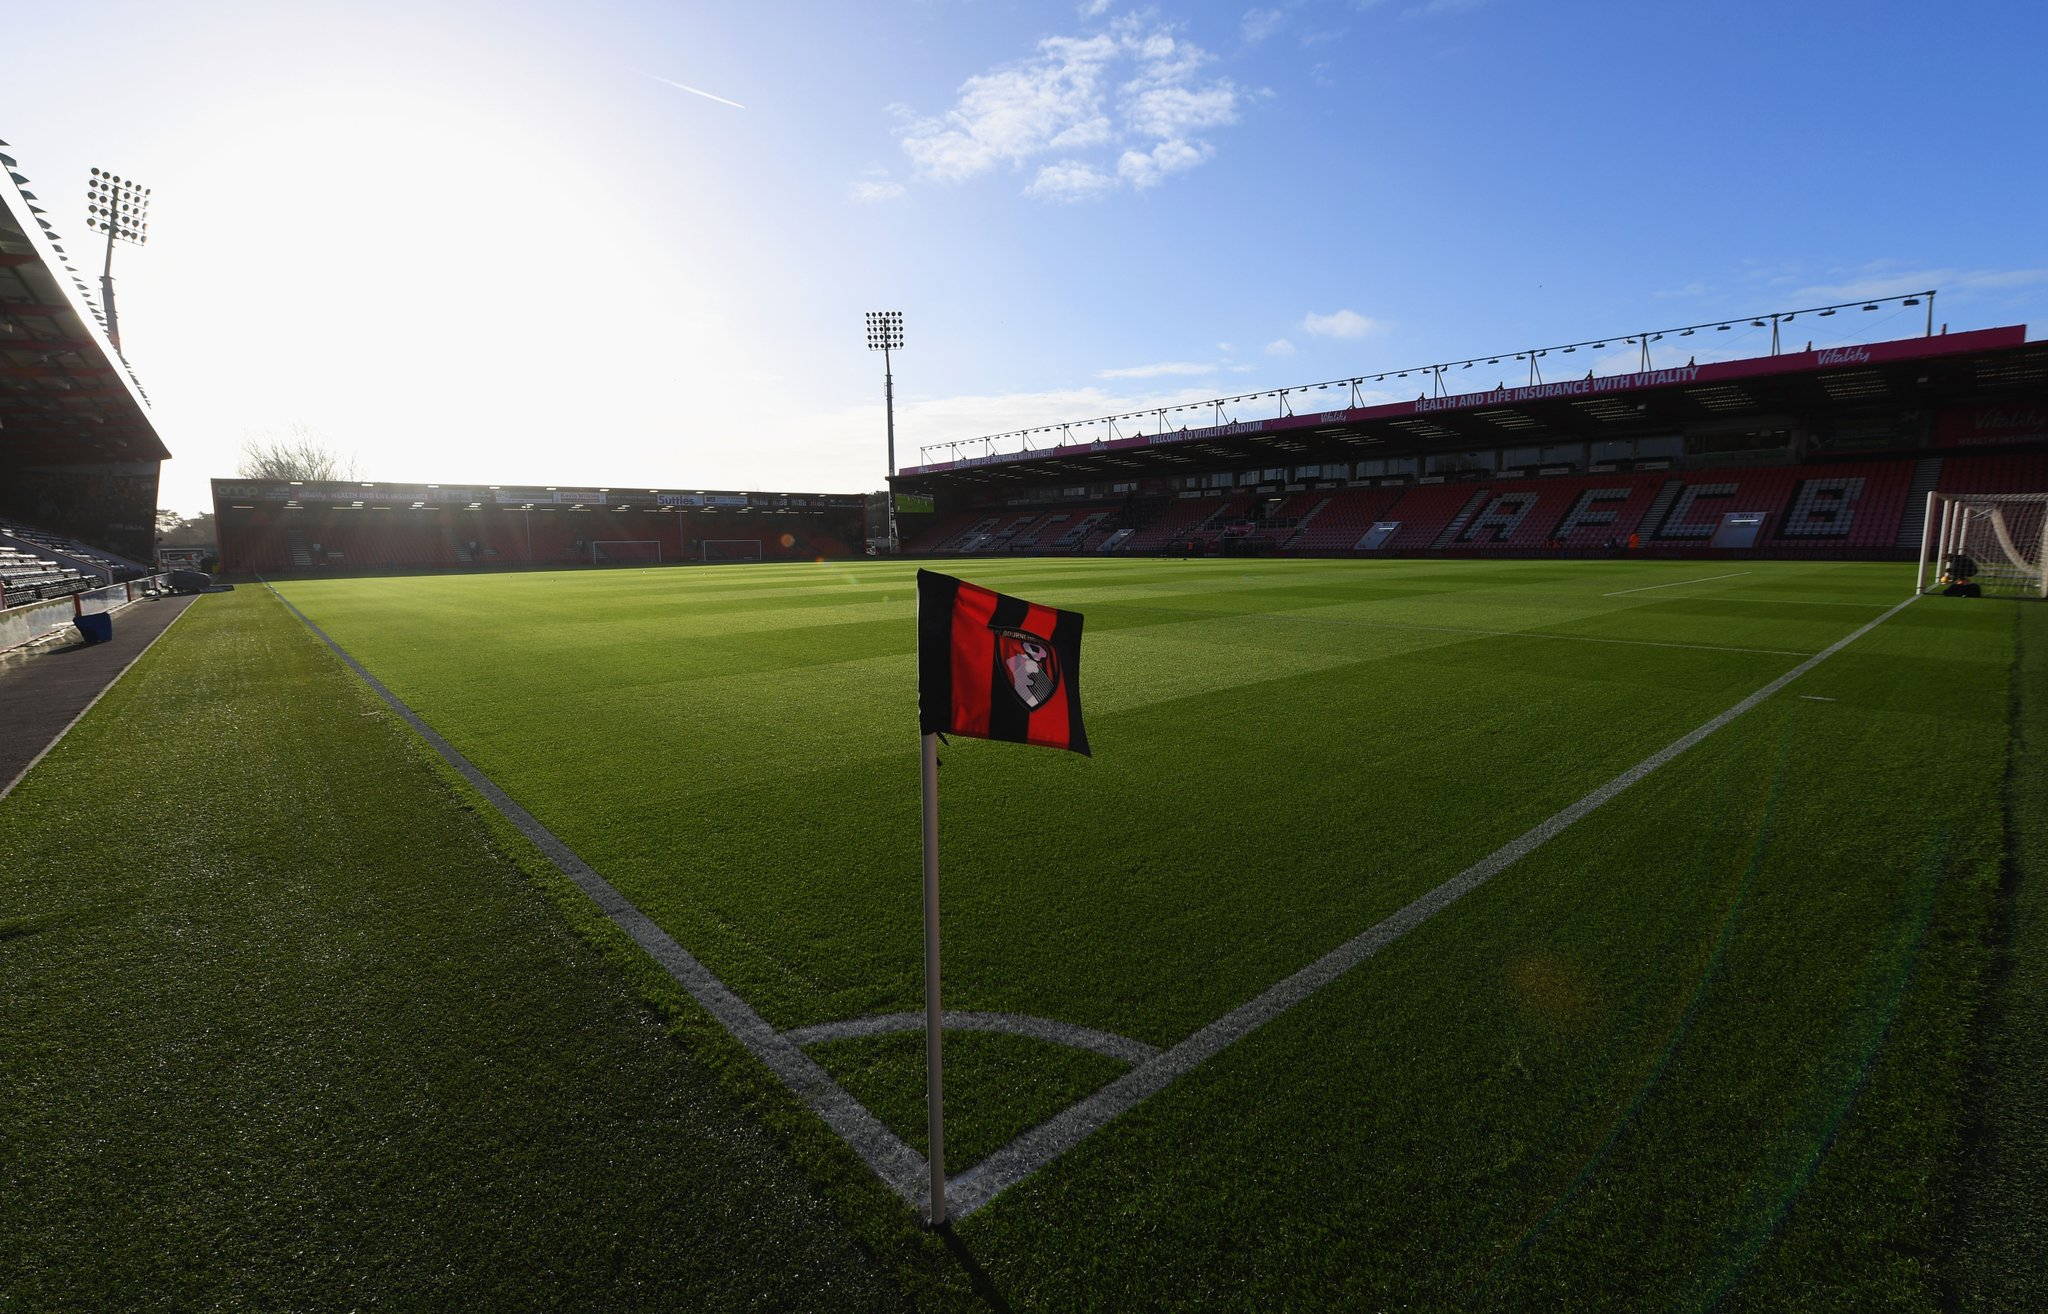 Nice day on the South Coast #BOULIV #LFC https://t.co/hlMFPO3AM2